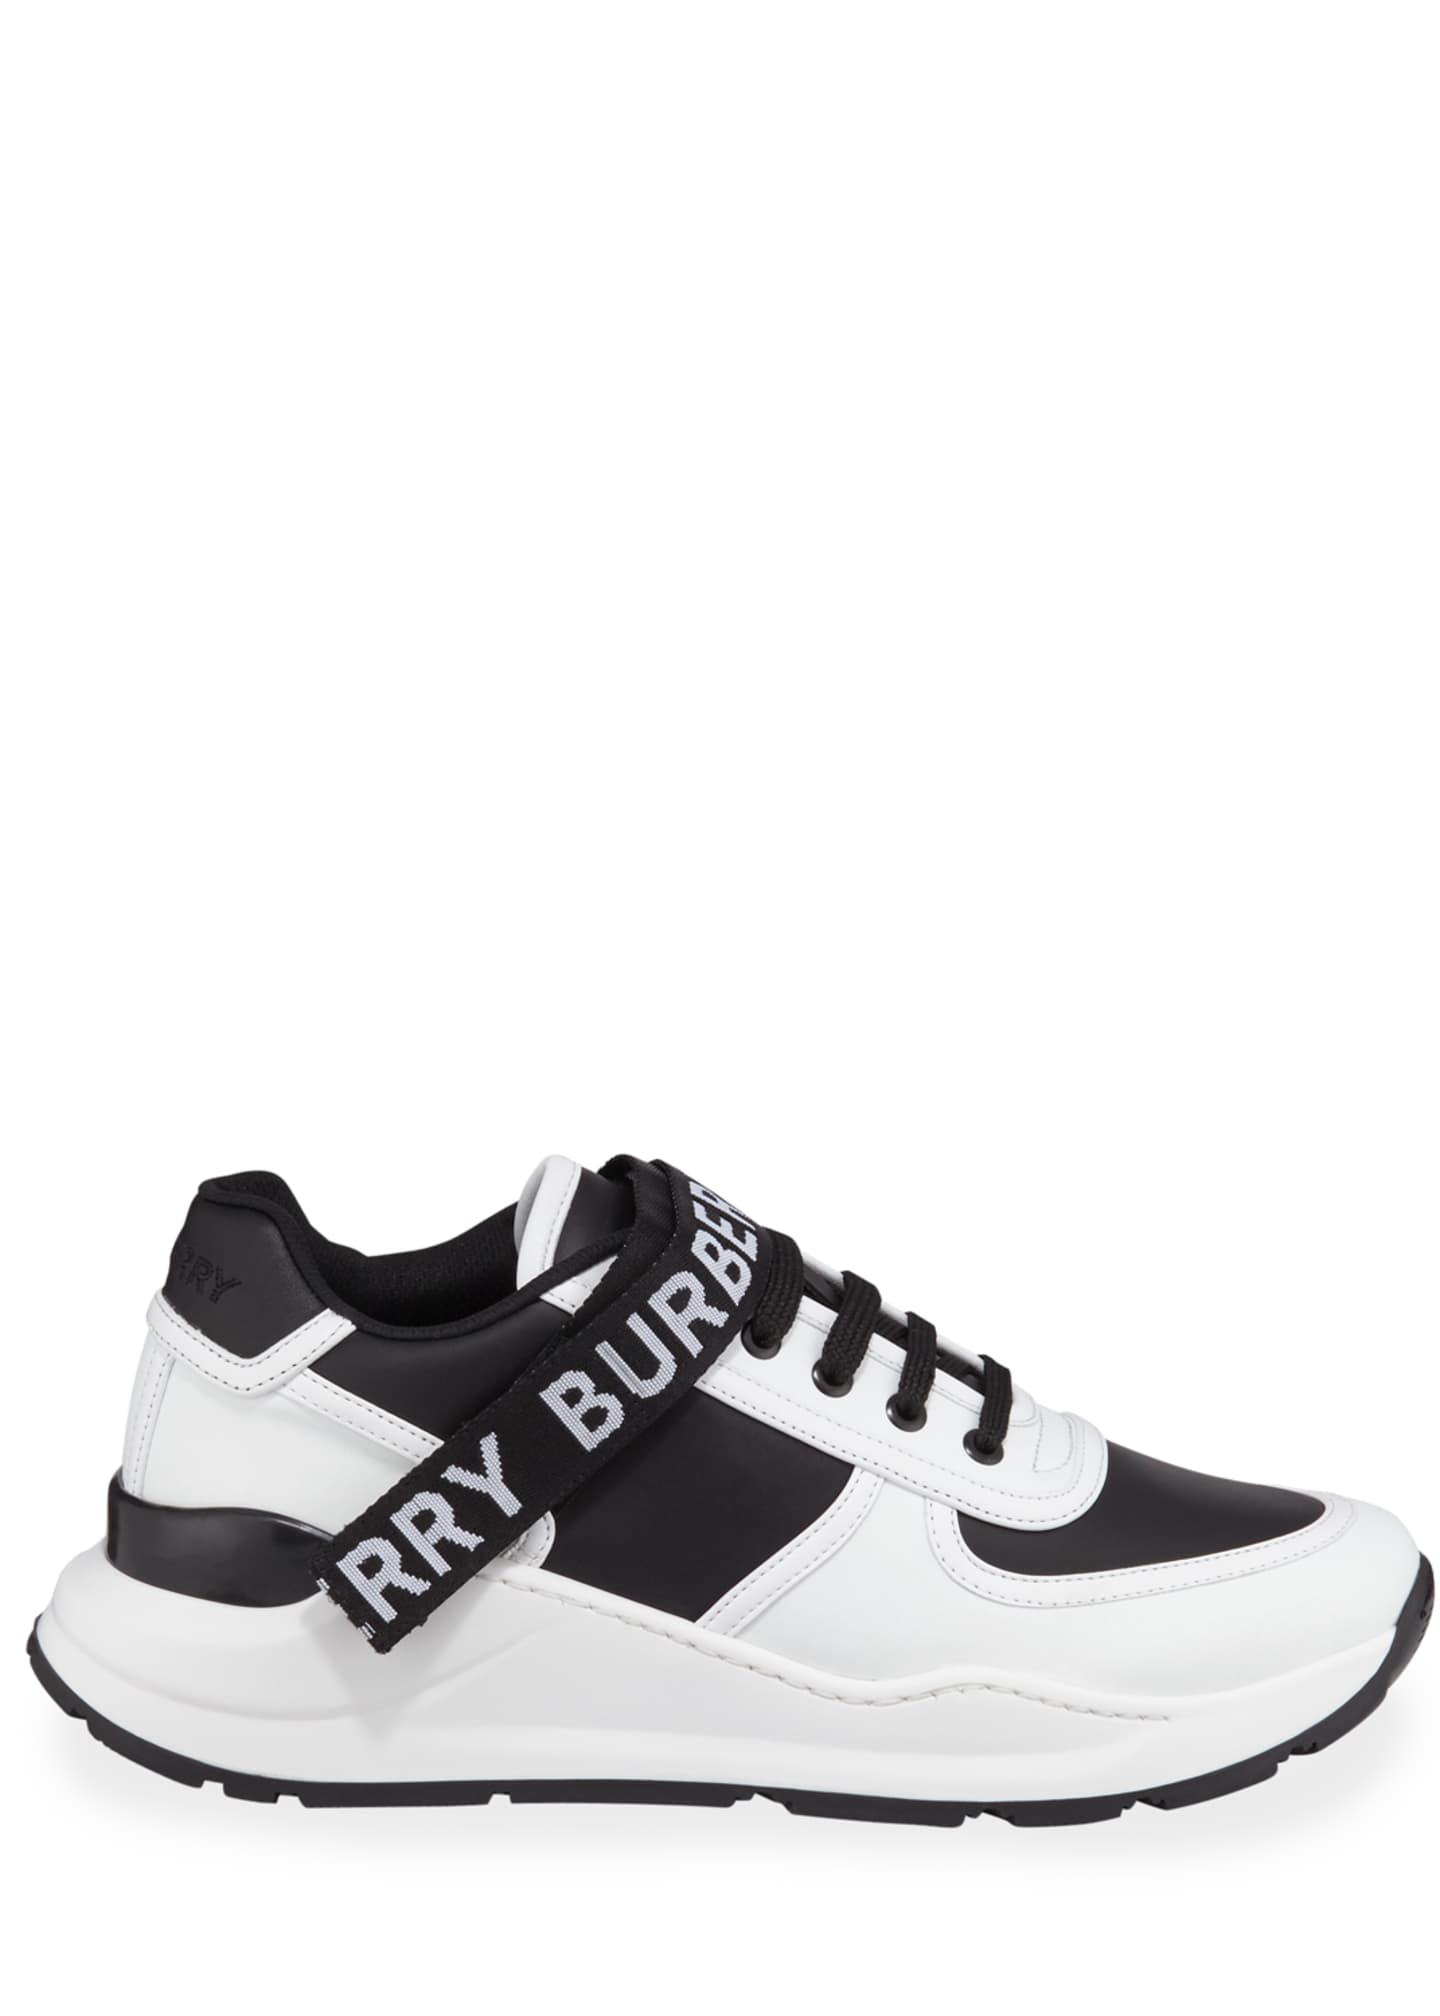 Image 3 of 3: Men's Ronnie Logo-Strap Leather Sneakers